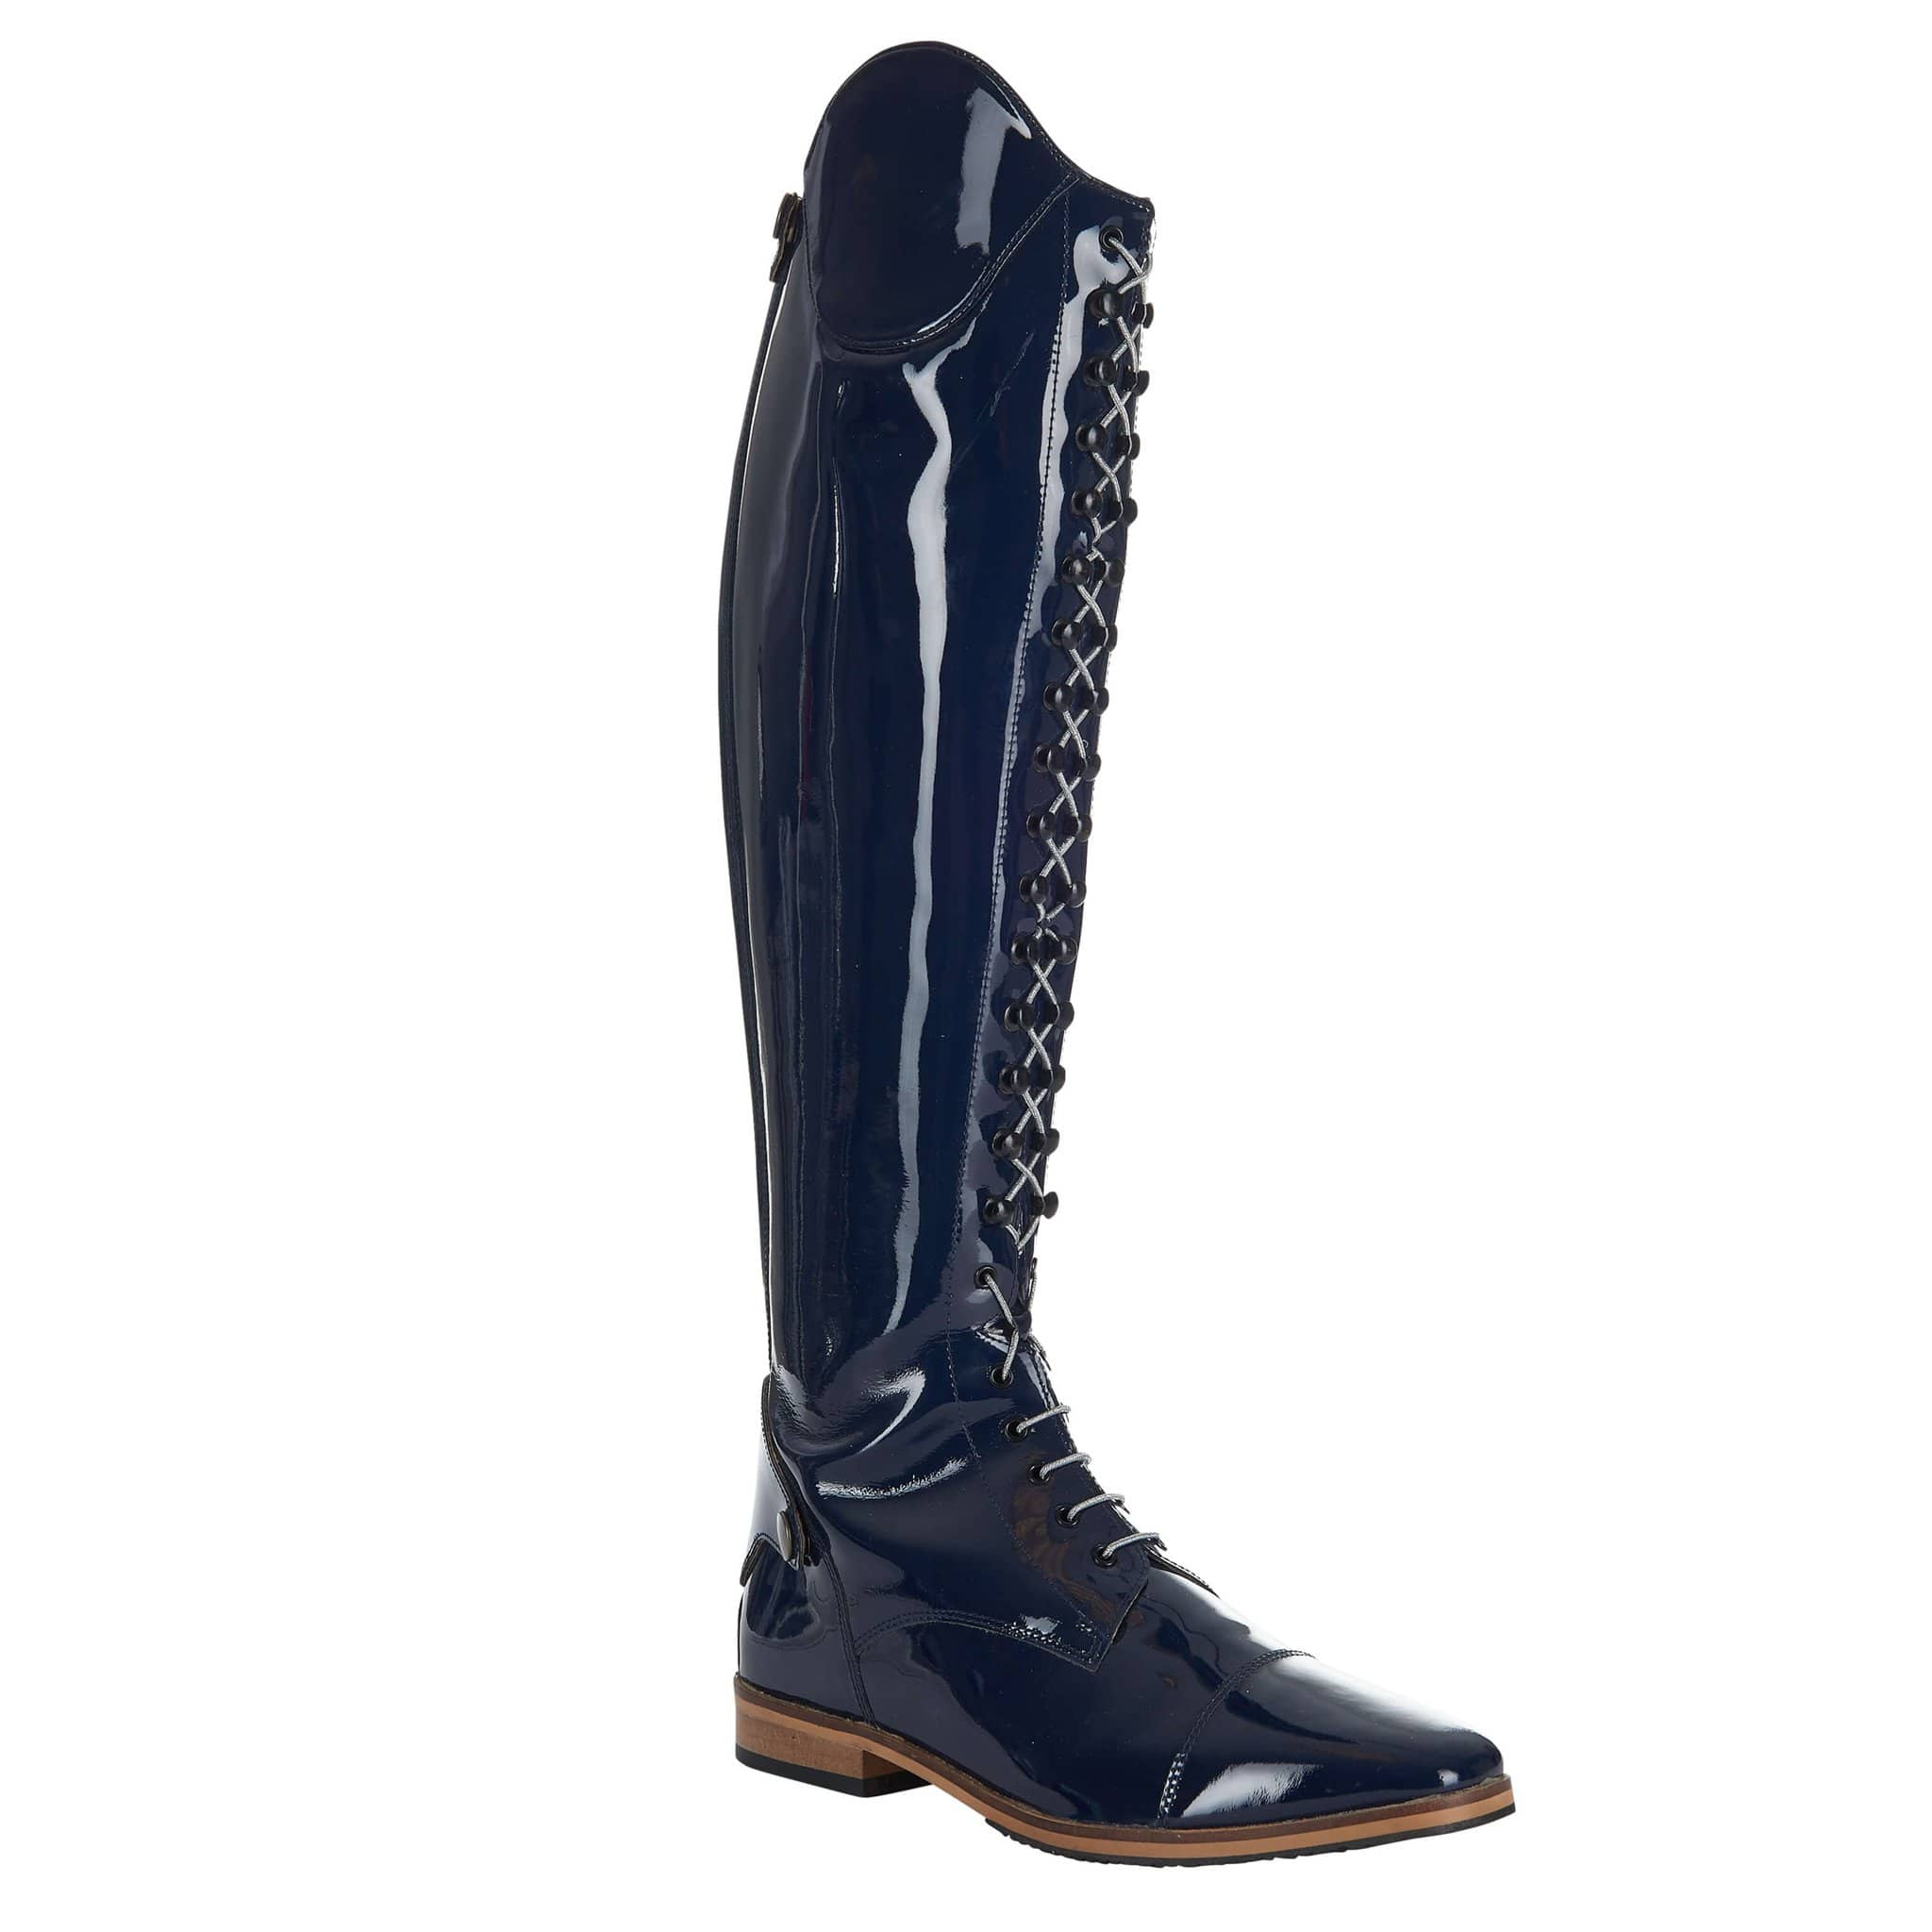 Imperial Riding Special Riding Boot Navy LA80118000